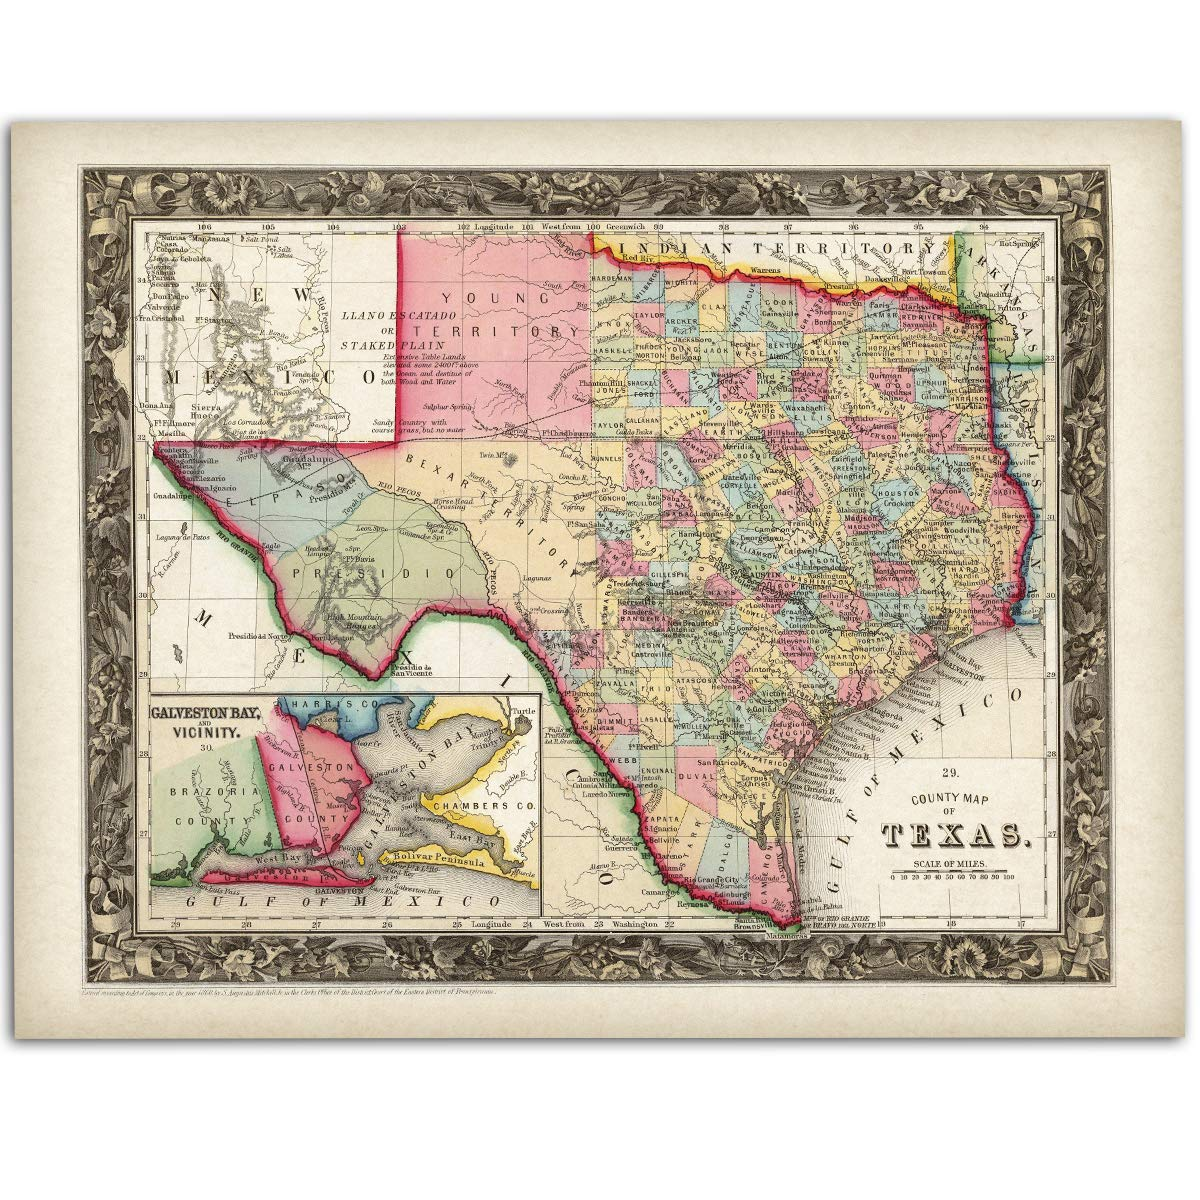 Amazon.com: County Map of Texas - 11x14 Unframed Art Print ... on location of rosenberg texas, major aquifers of texas, google austin texas, american bank of texas, the annexation of texas, geographic center of texas, dallas texas, relative location of texas, geographical id texas, city of rosenberg texas, temperature austin texas, missions of texas, city of manor texas, austin city limits map texas, lakes of texas, 3d physical map texas, printable maps north texas, is there desert in texas, black and white state of texas, stuff about texas,